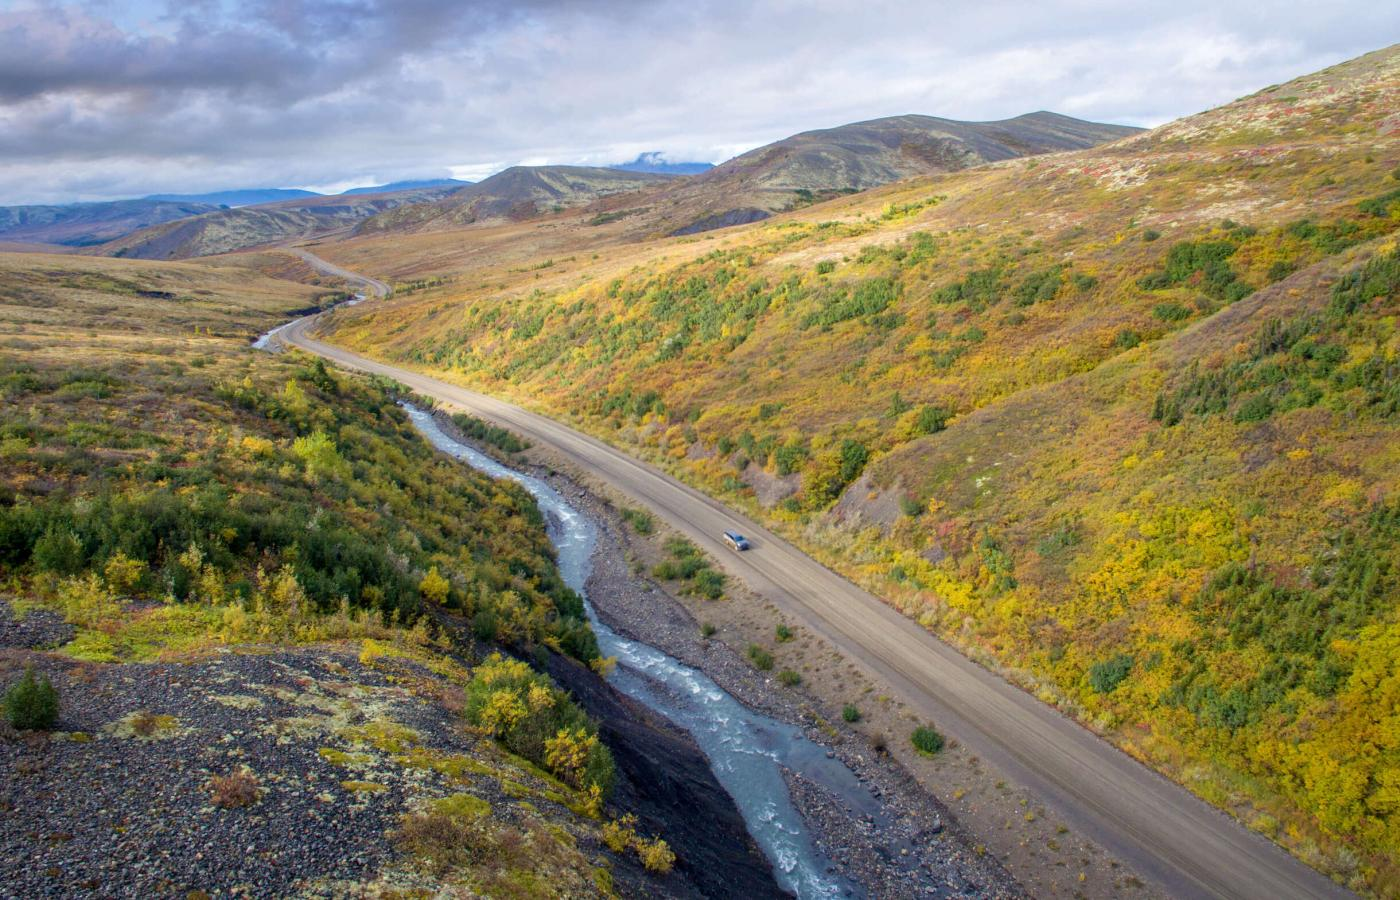 Dempster Highway driving